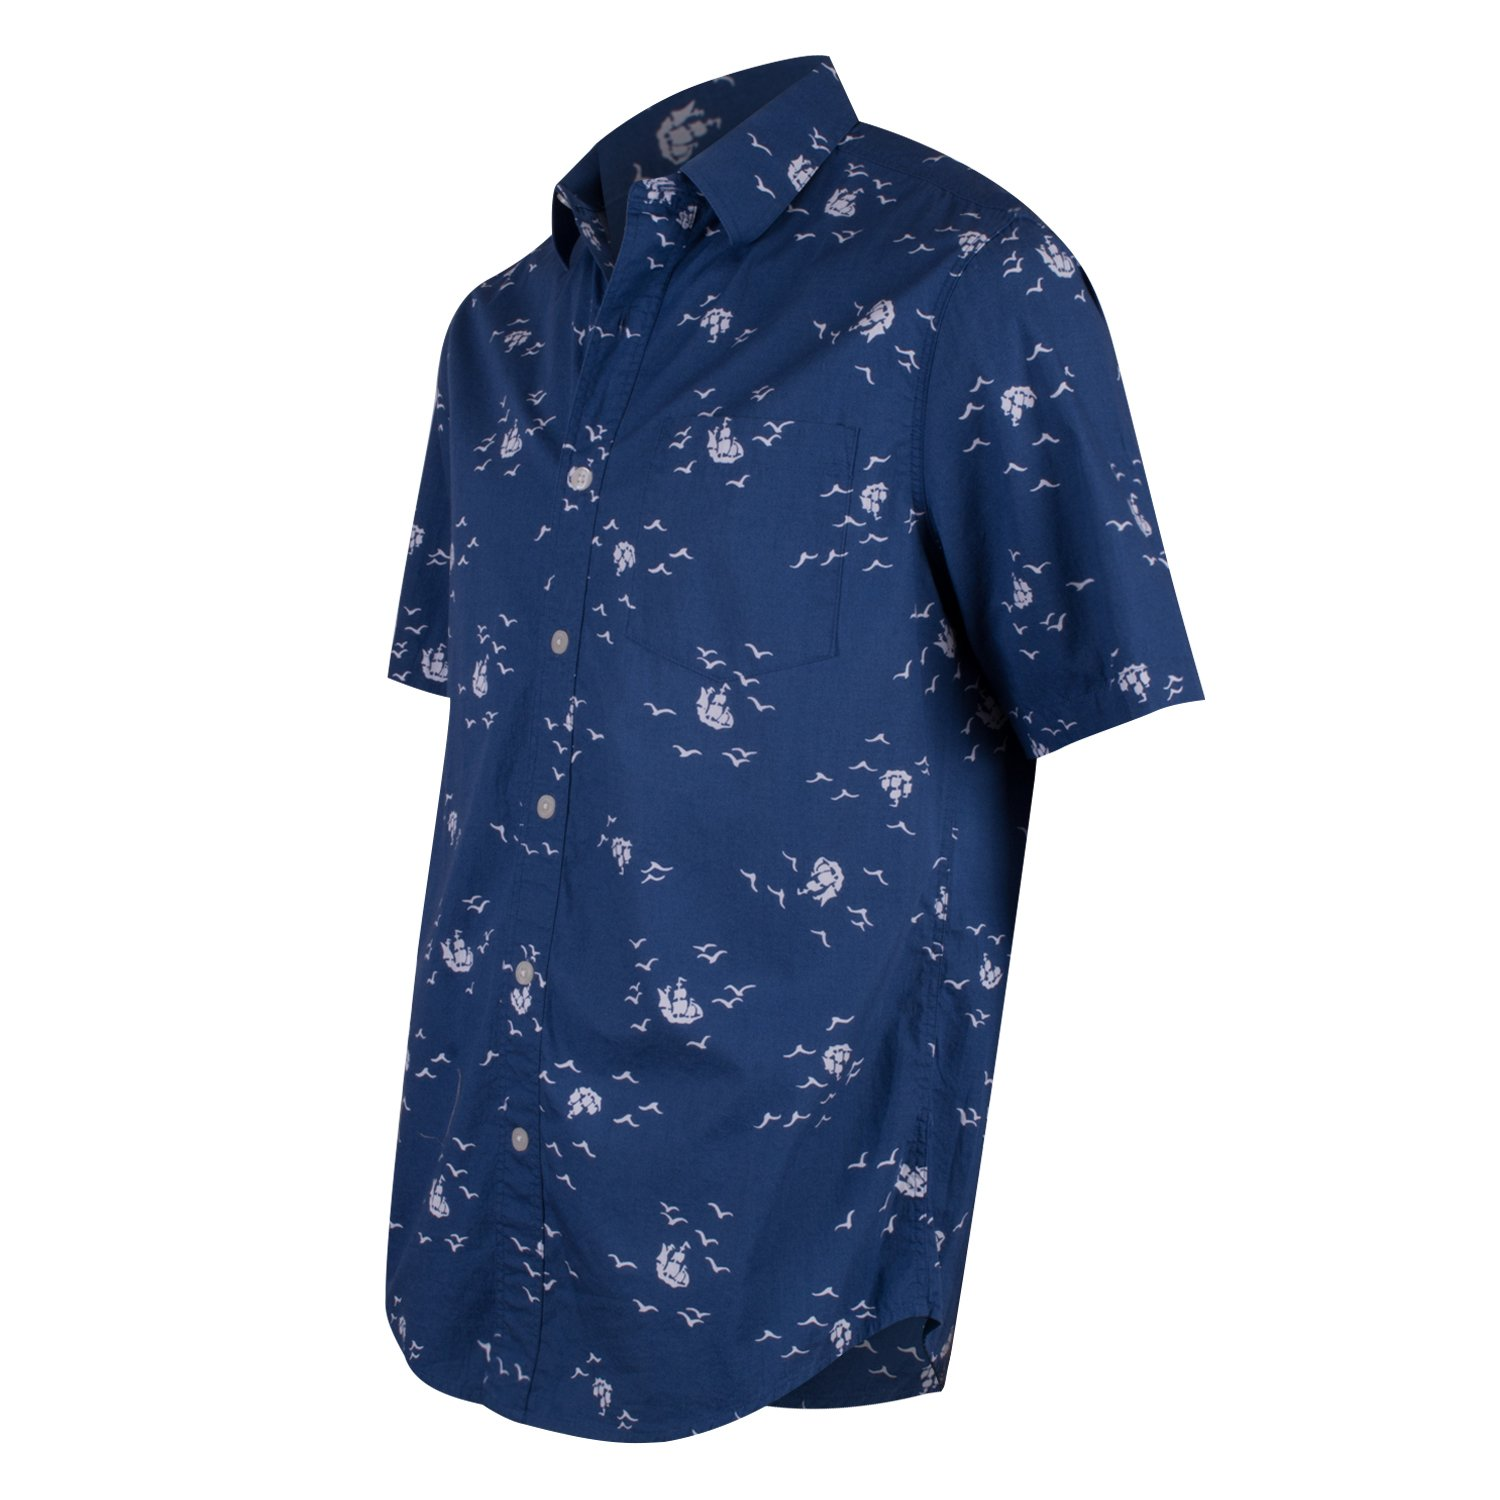 55190dca Campia Moda Men's Washed Cotton Modern Fit Print Shirt (Navy Abstract Bird  and Ship Print, S) at Amazon Men's Clothing store: